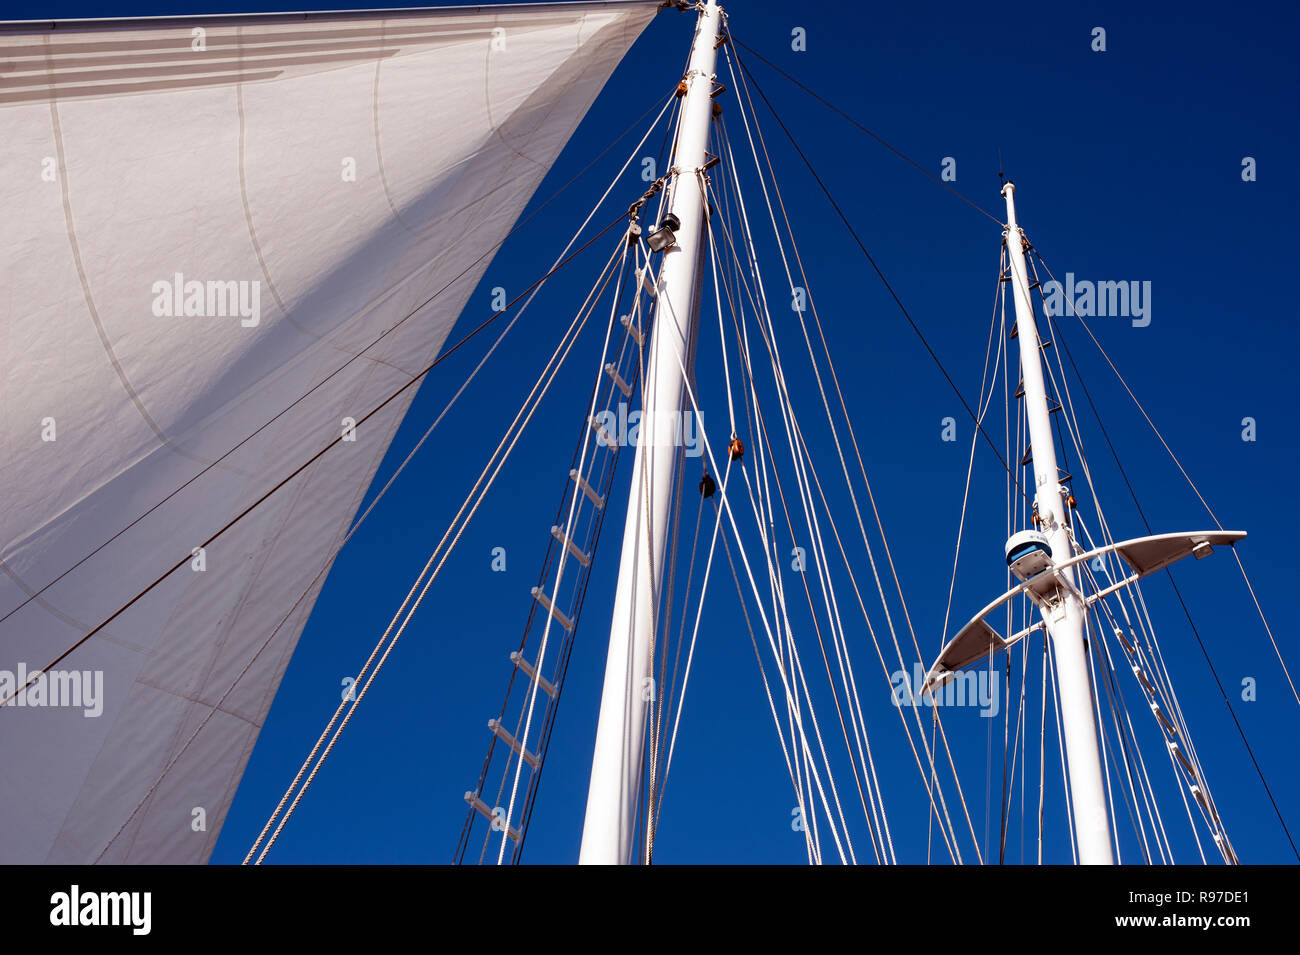 Bellingham Bay Marina with sailboats moored with blue sky and close-up of sails,masts and riggings - Stock Image